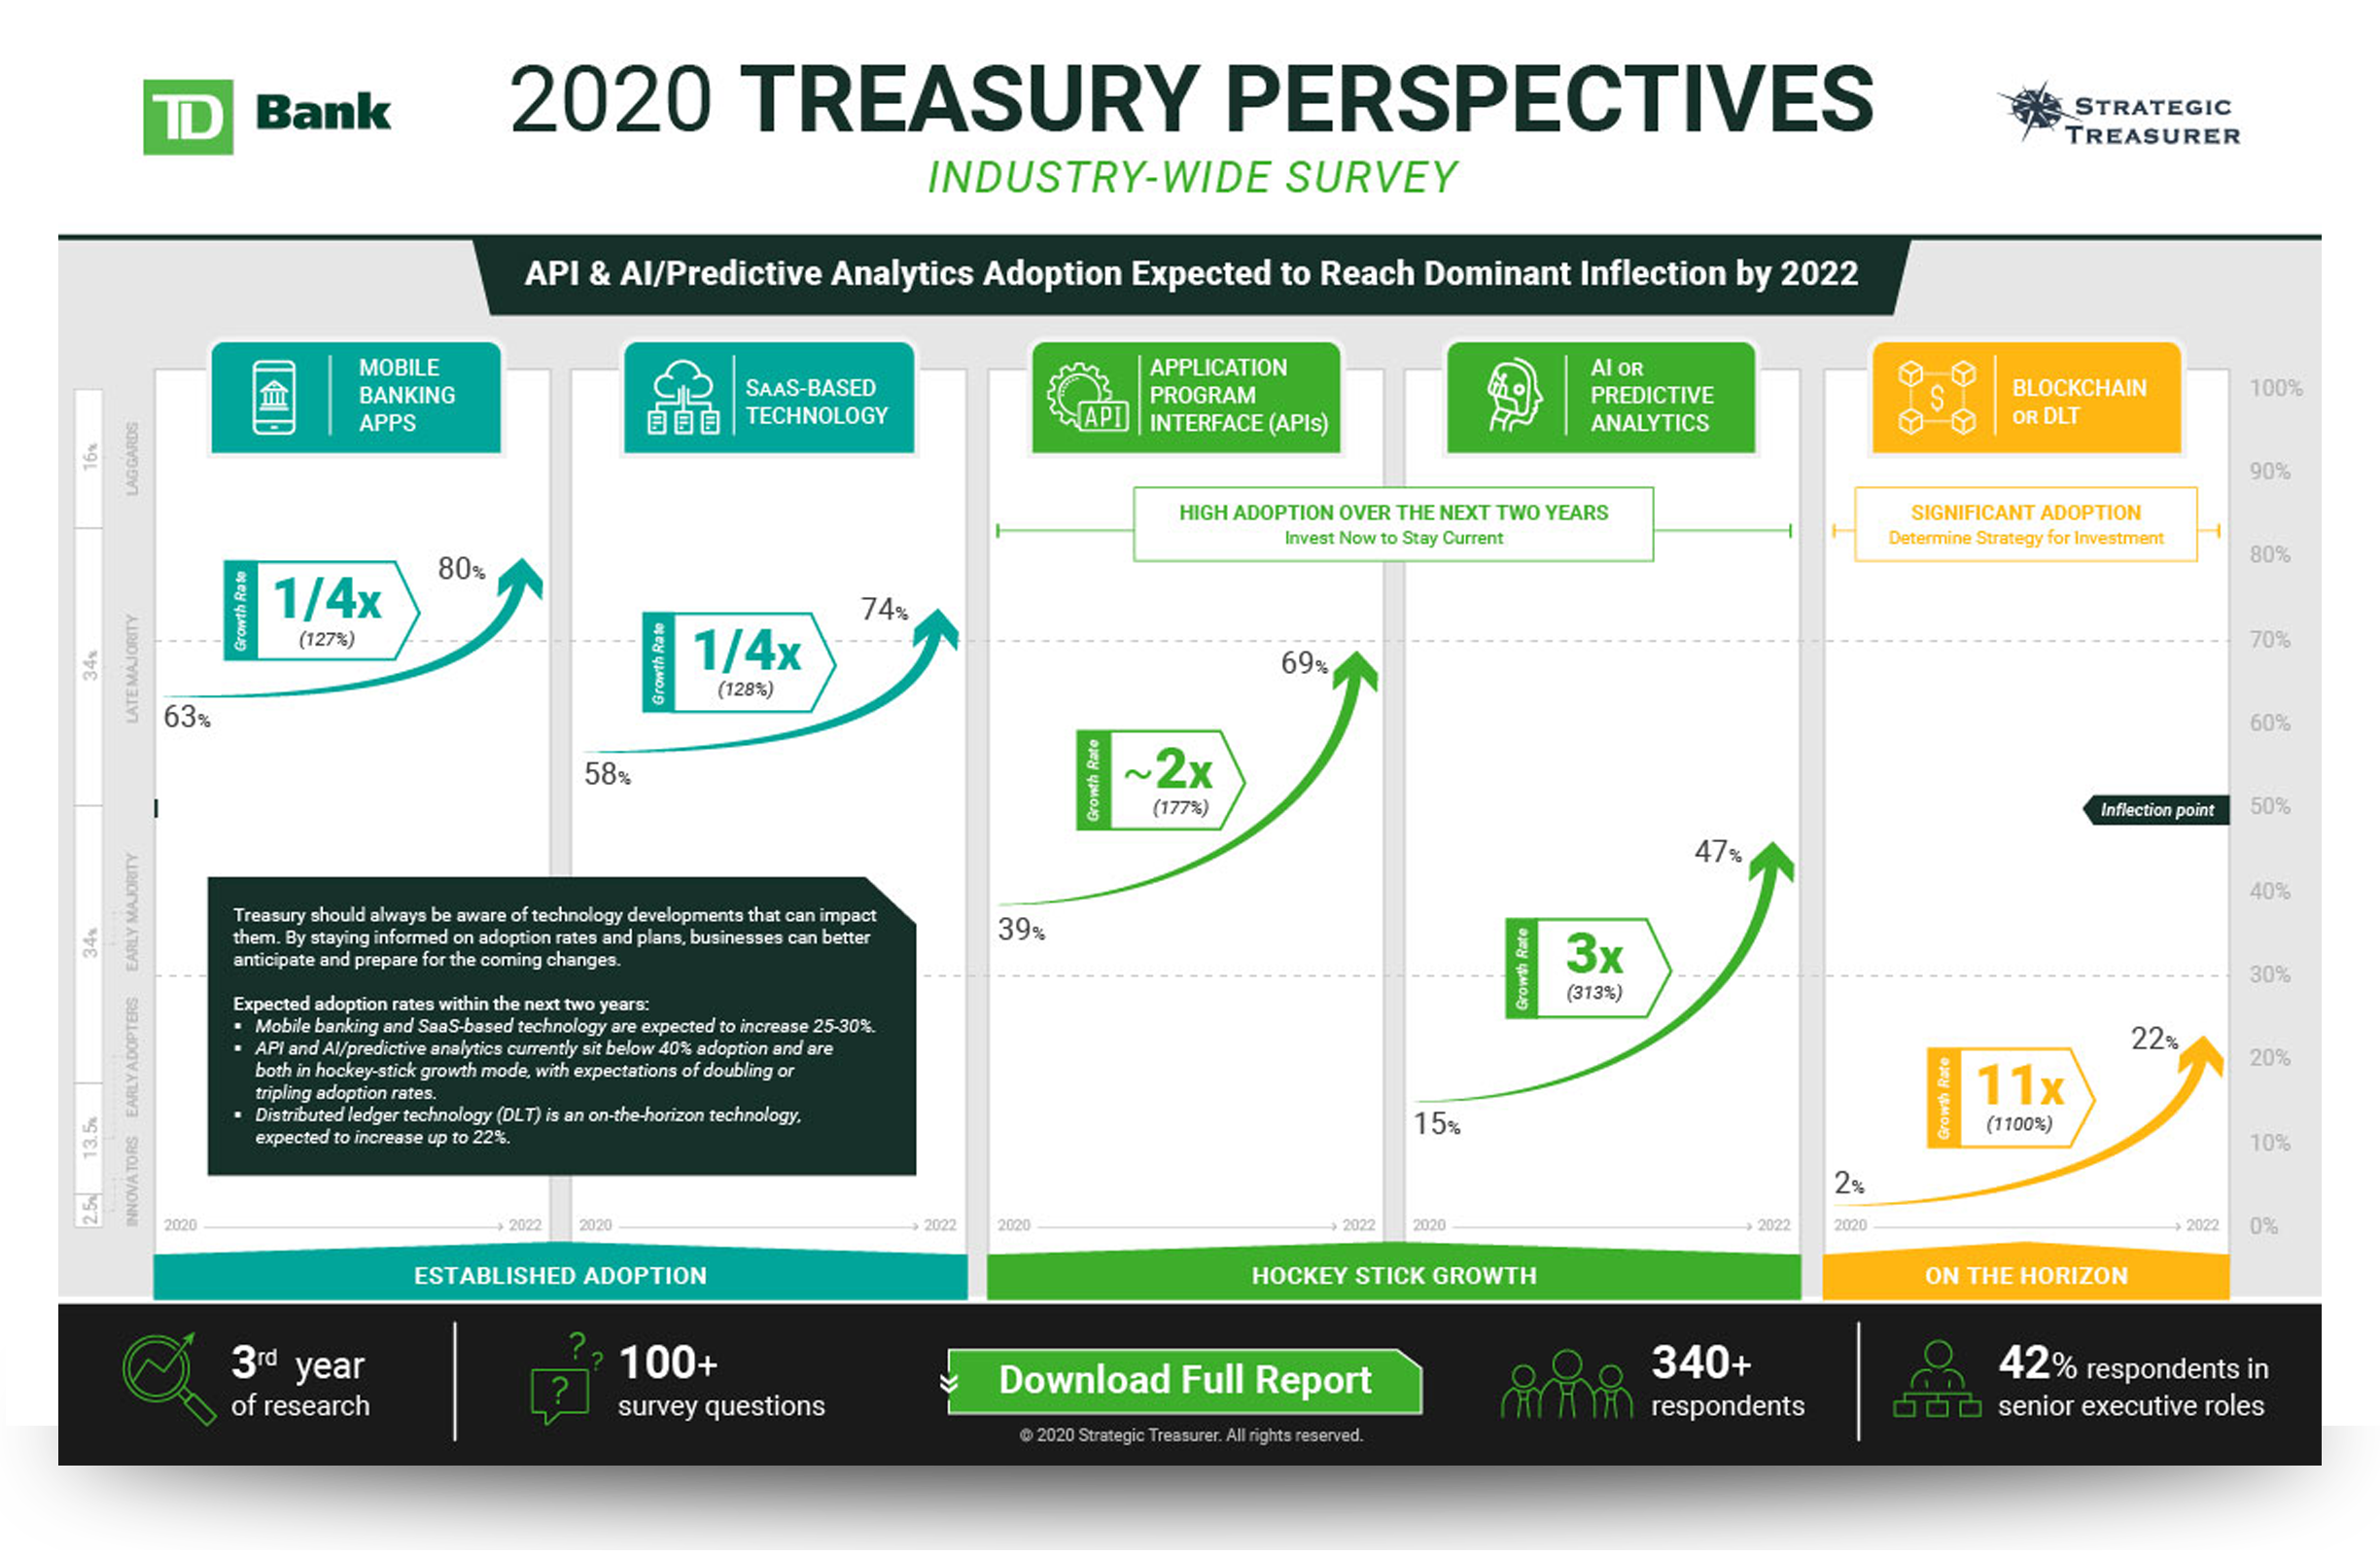 2020 Treasury Perspectives Survey Infographic